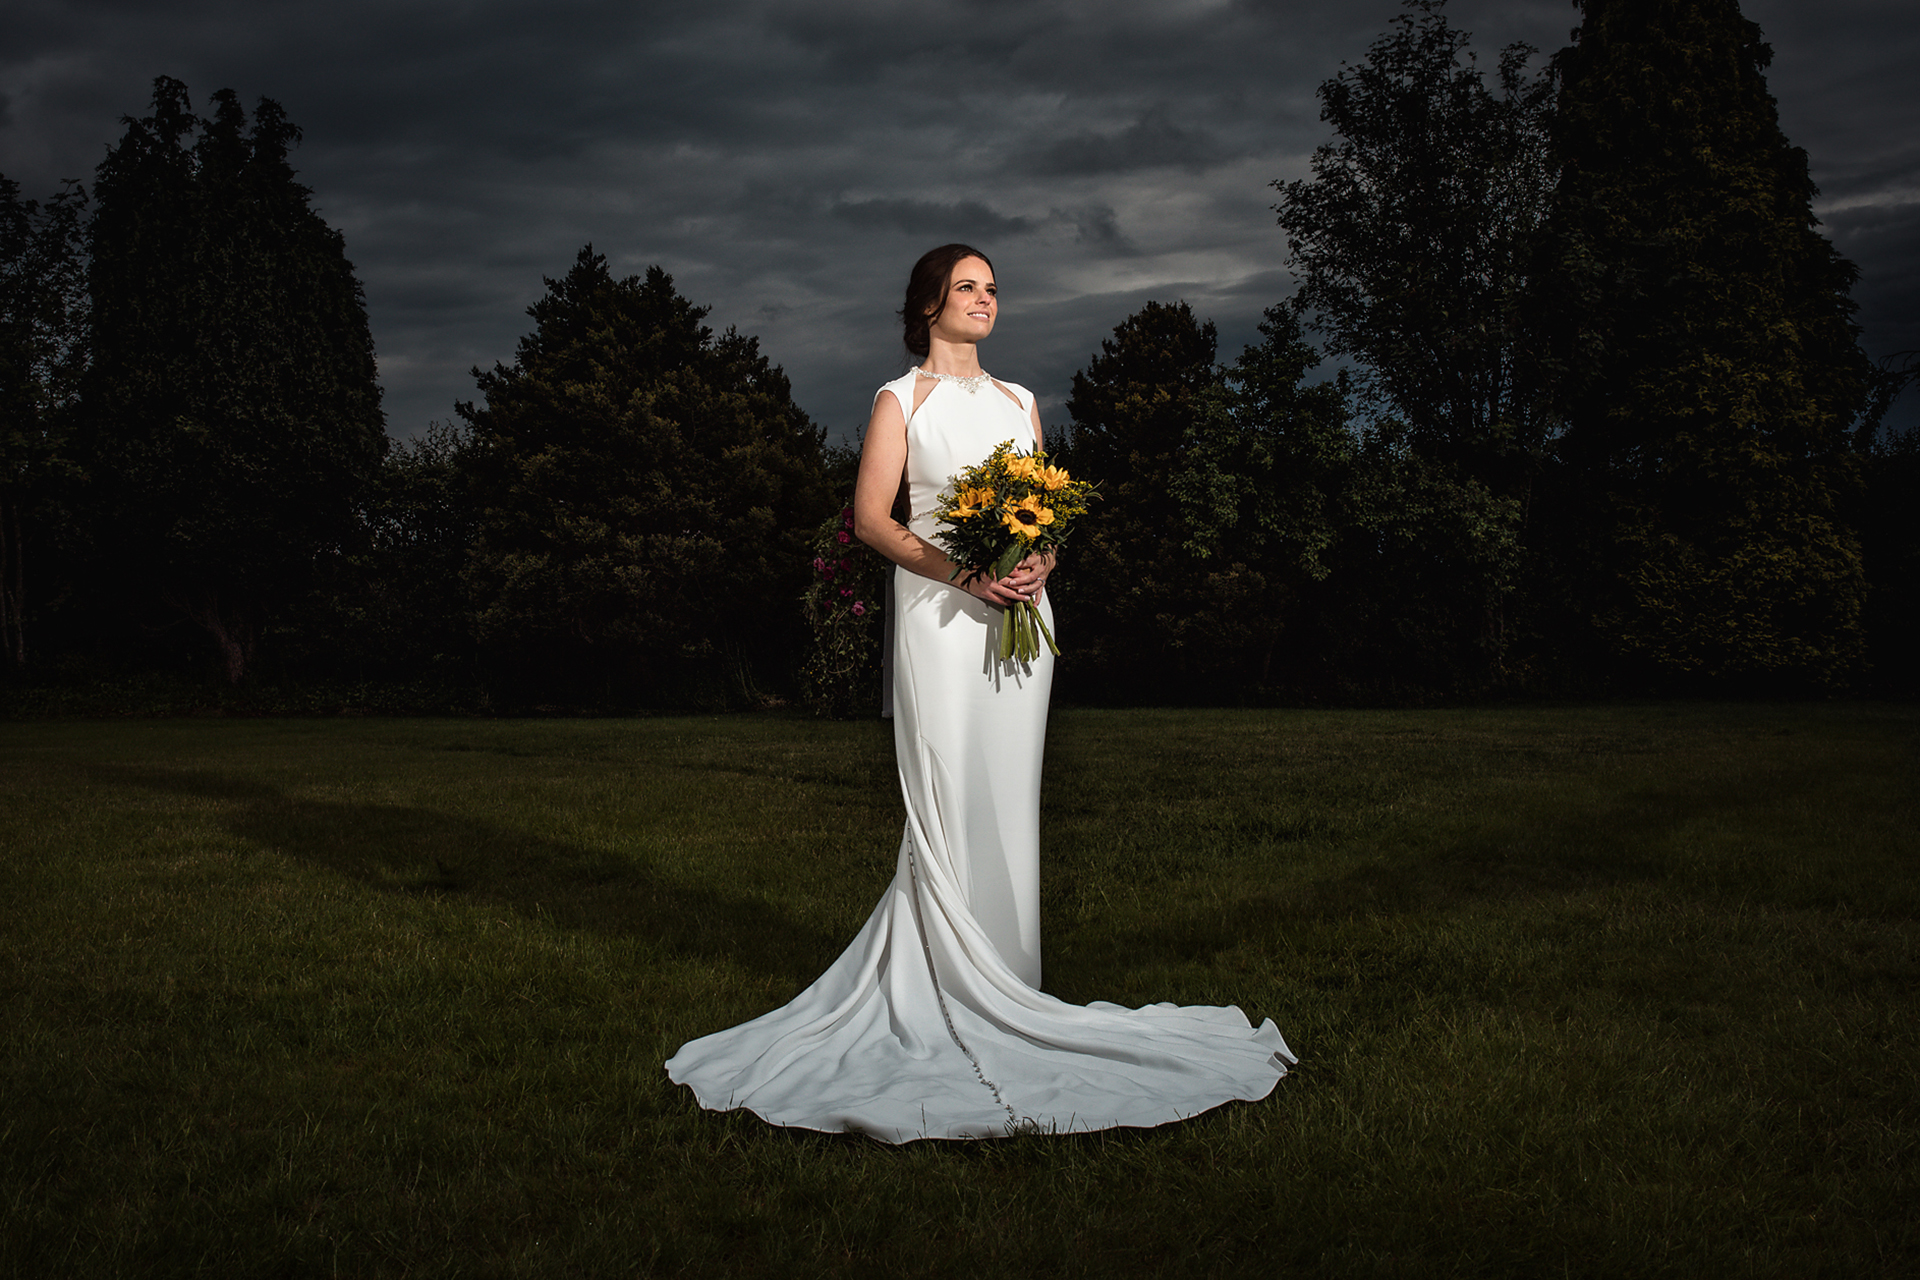 The bride standing outside holding a bouquet